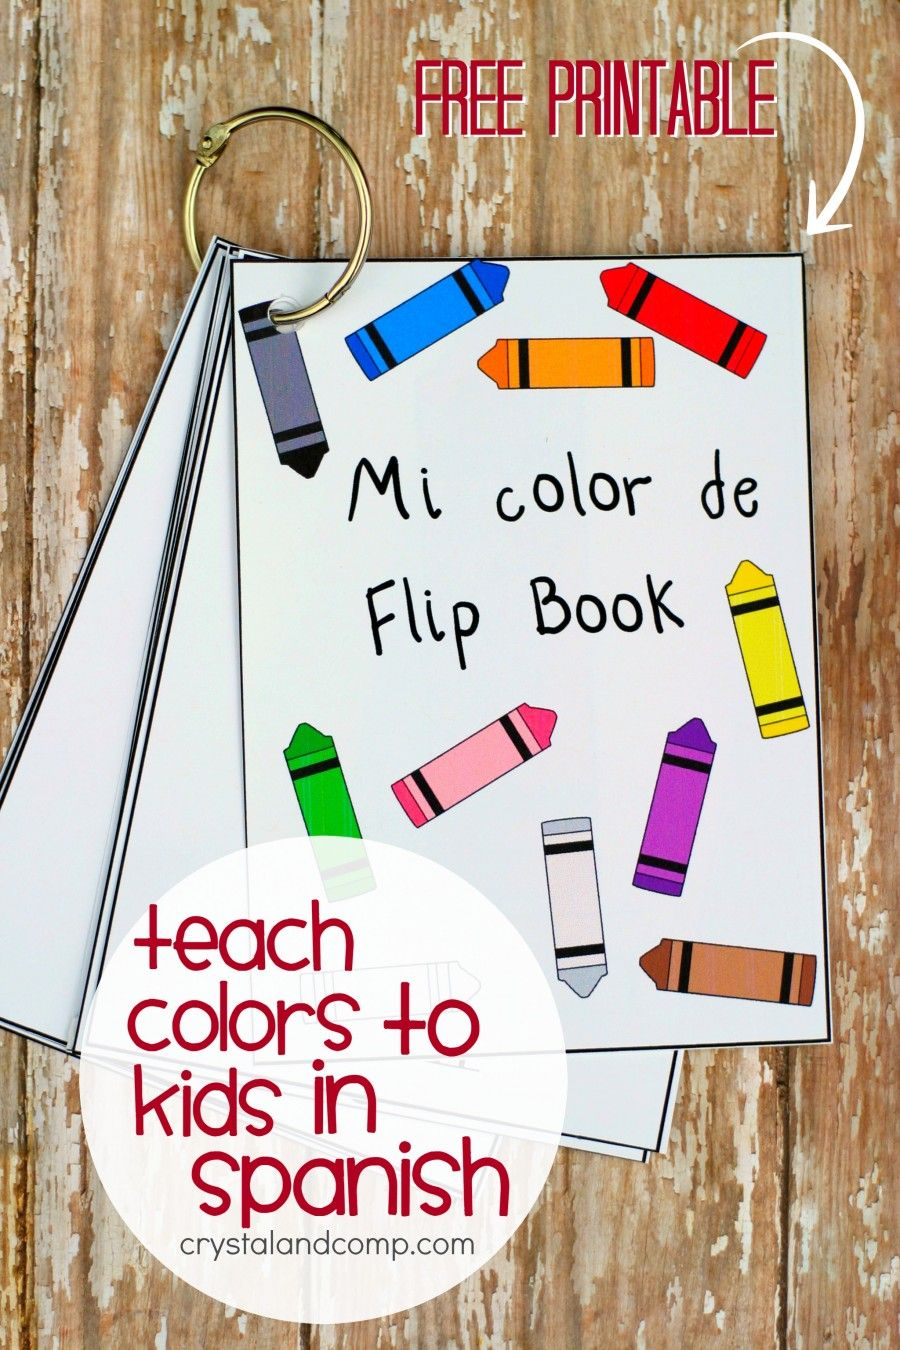 Spanish colors for preschool - Teach Colors To Kids In Spanish Flip Book